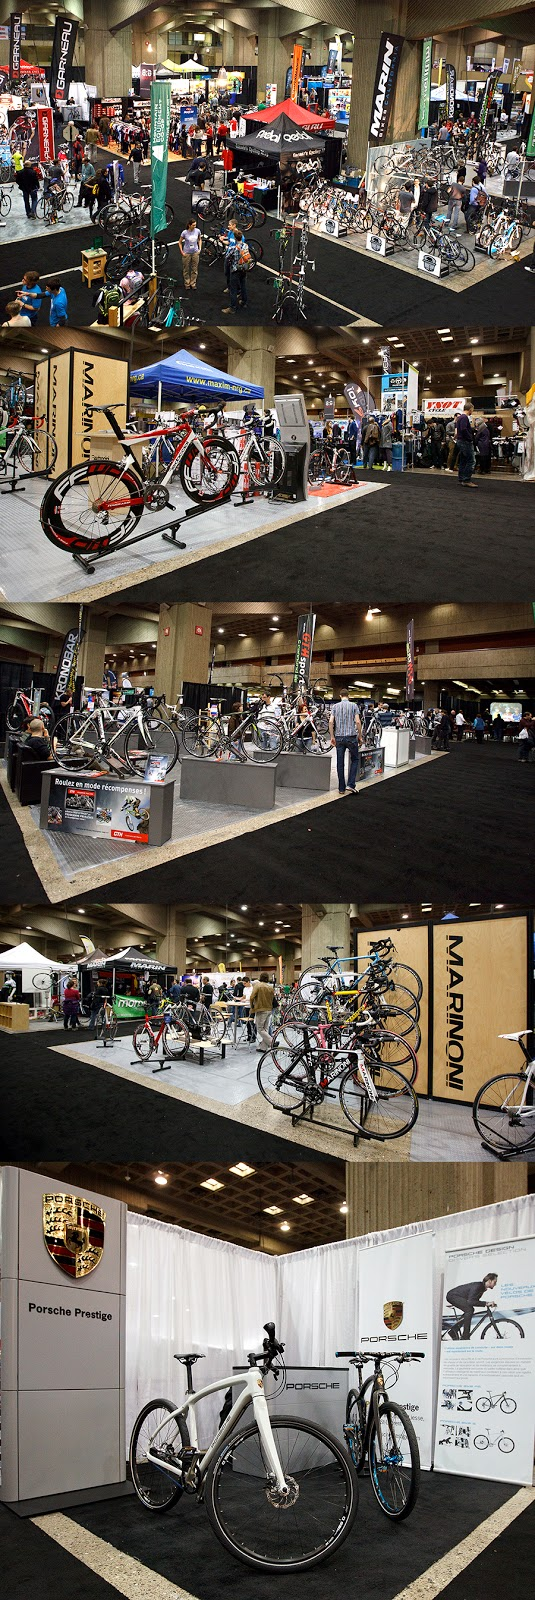 The montreal bike show last day sunday february 19 2012 for Le miroir du cyclisme